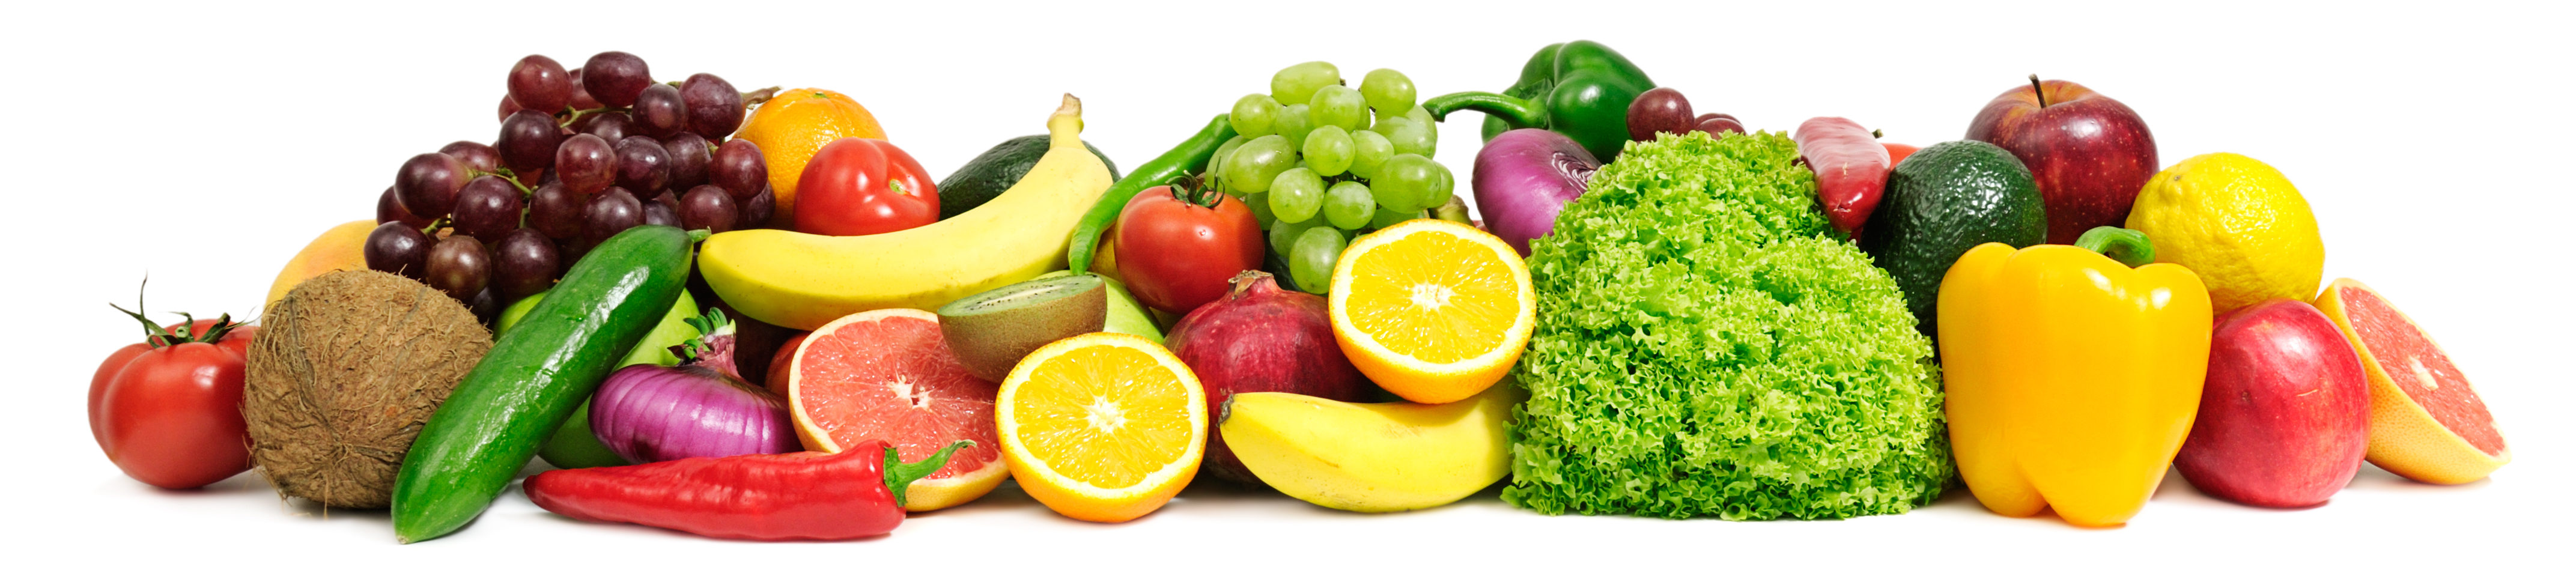 fruits-and-vegetables-2